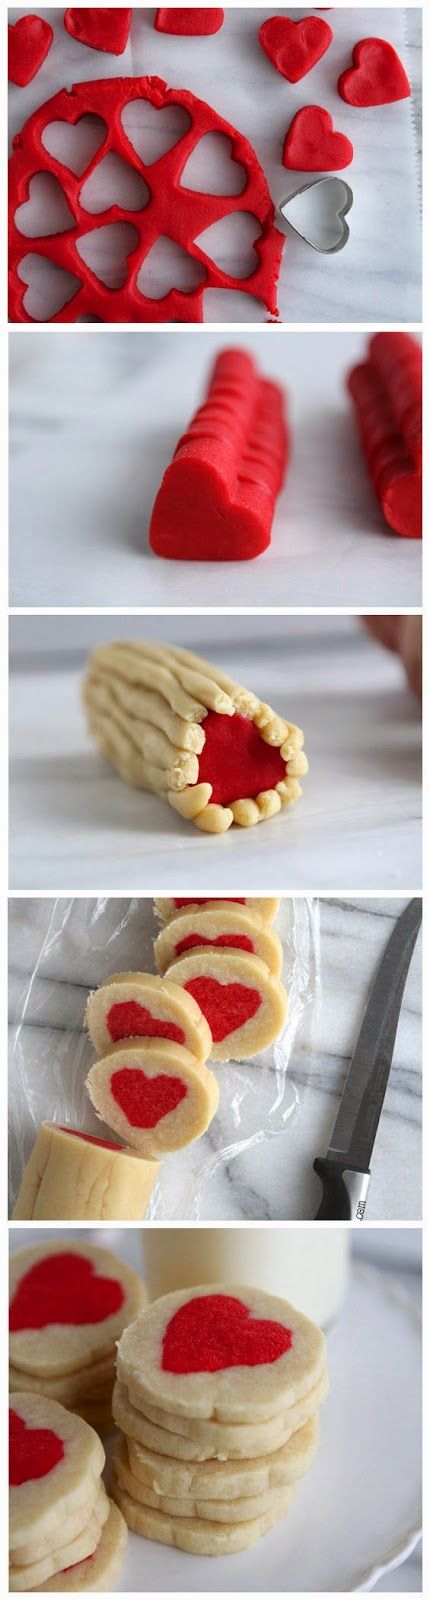 Slice n' Bake Valentine Heart Cookies Use dough with red food coloring for hearts Use dough around the heart #delicious #recipe #cake #desserts #dessertrecipes #yummy #delicious #food #sweet